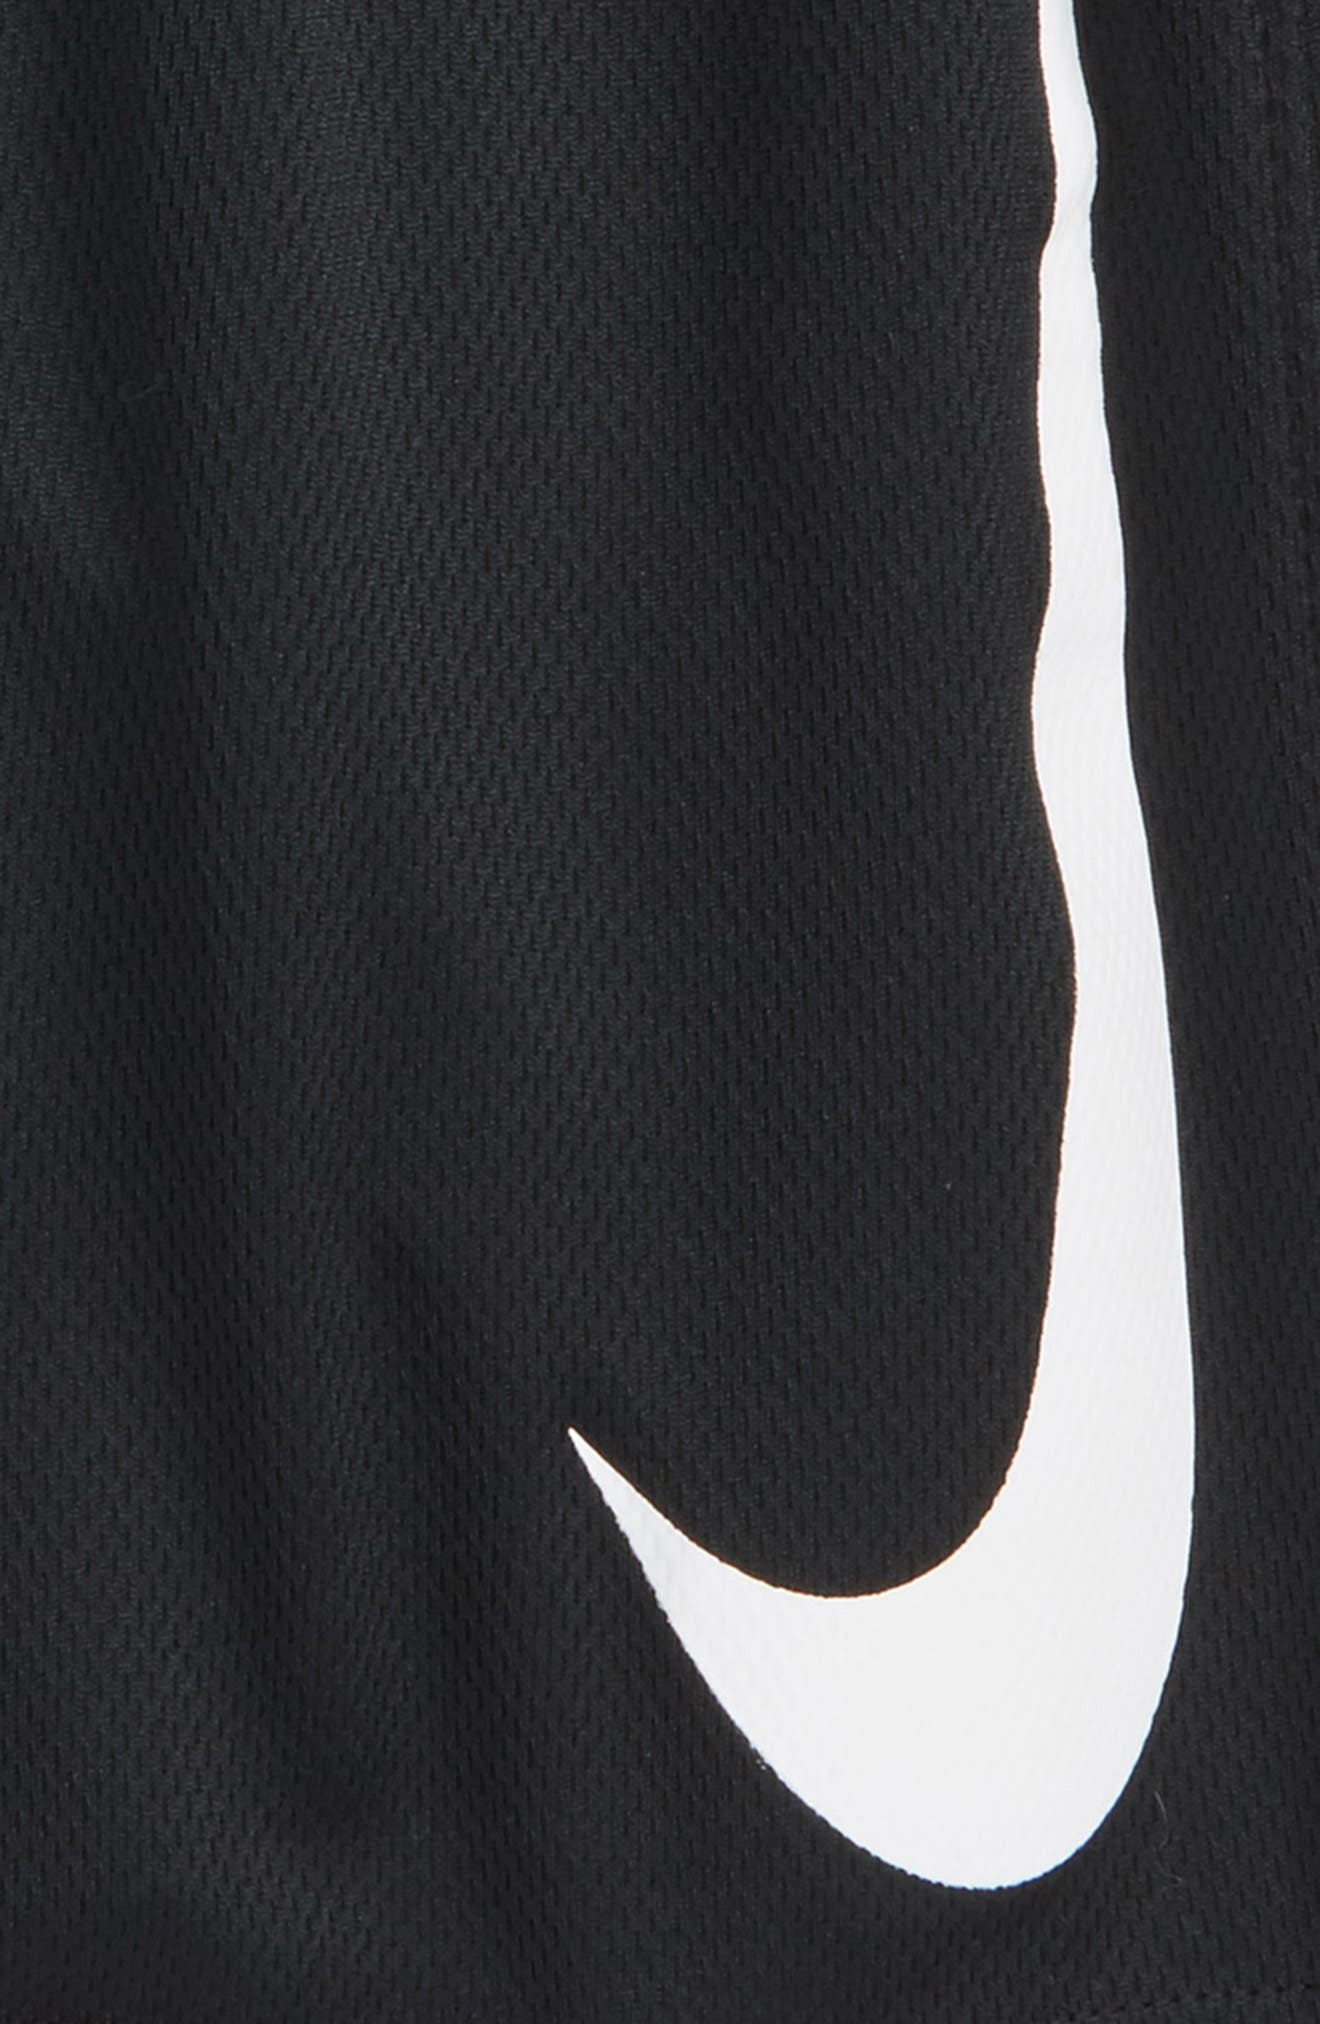 Dry Shorts,                             Alternate thumbnail 2, color,                             BLACK/ ANTHRACITE